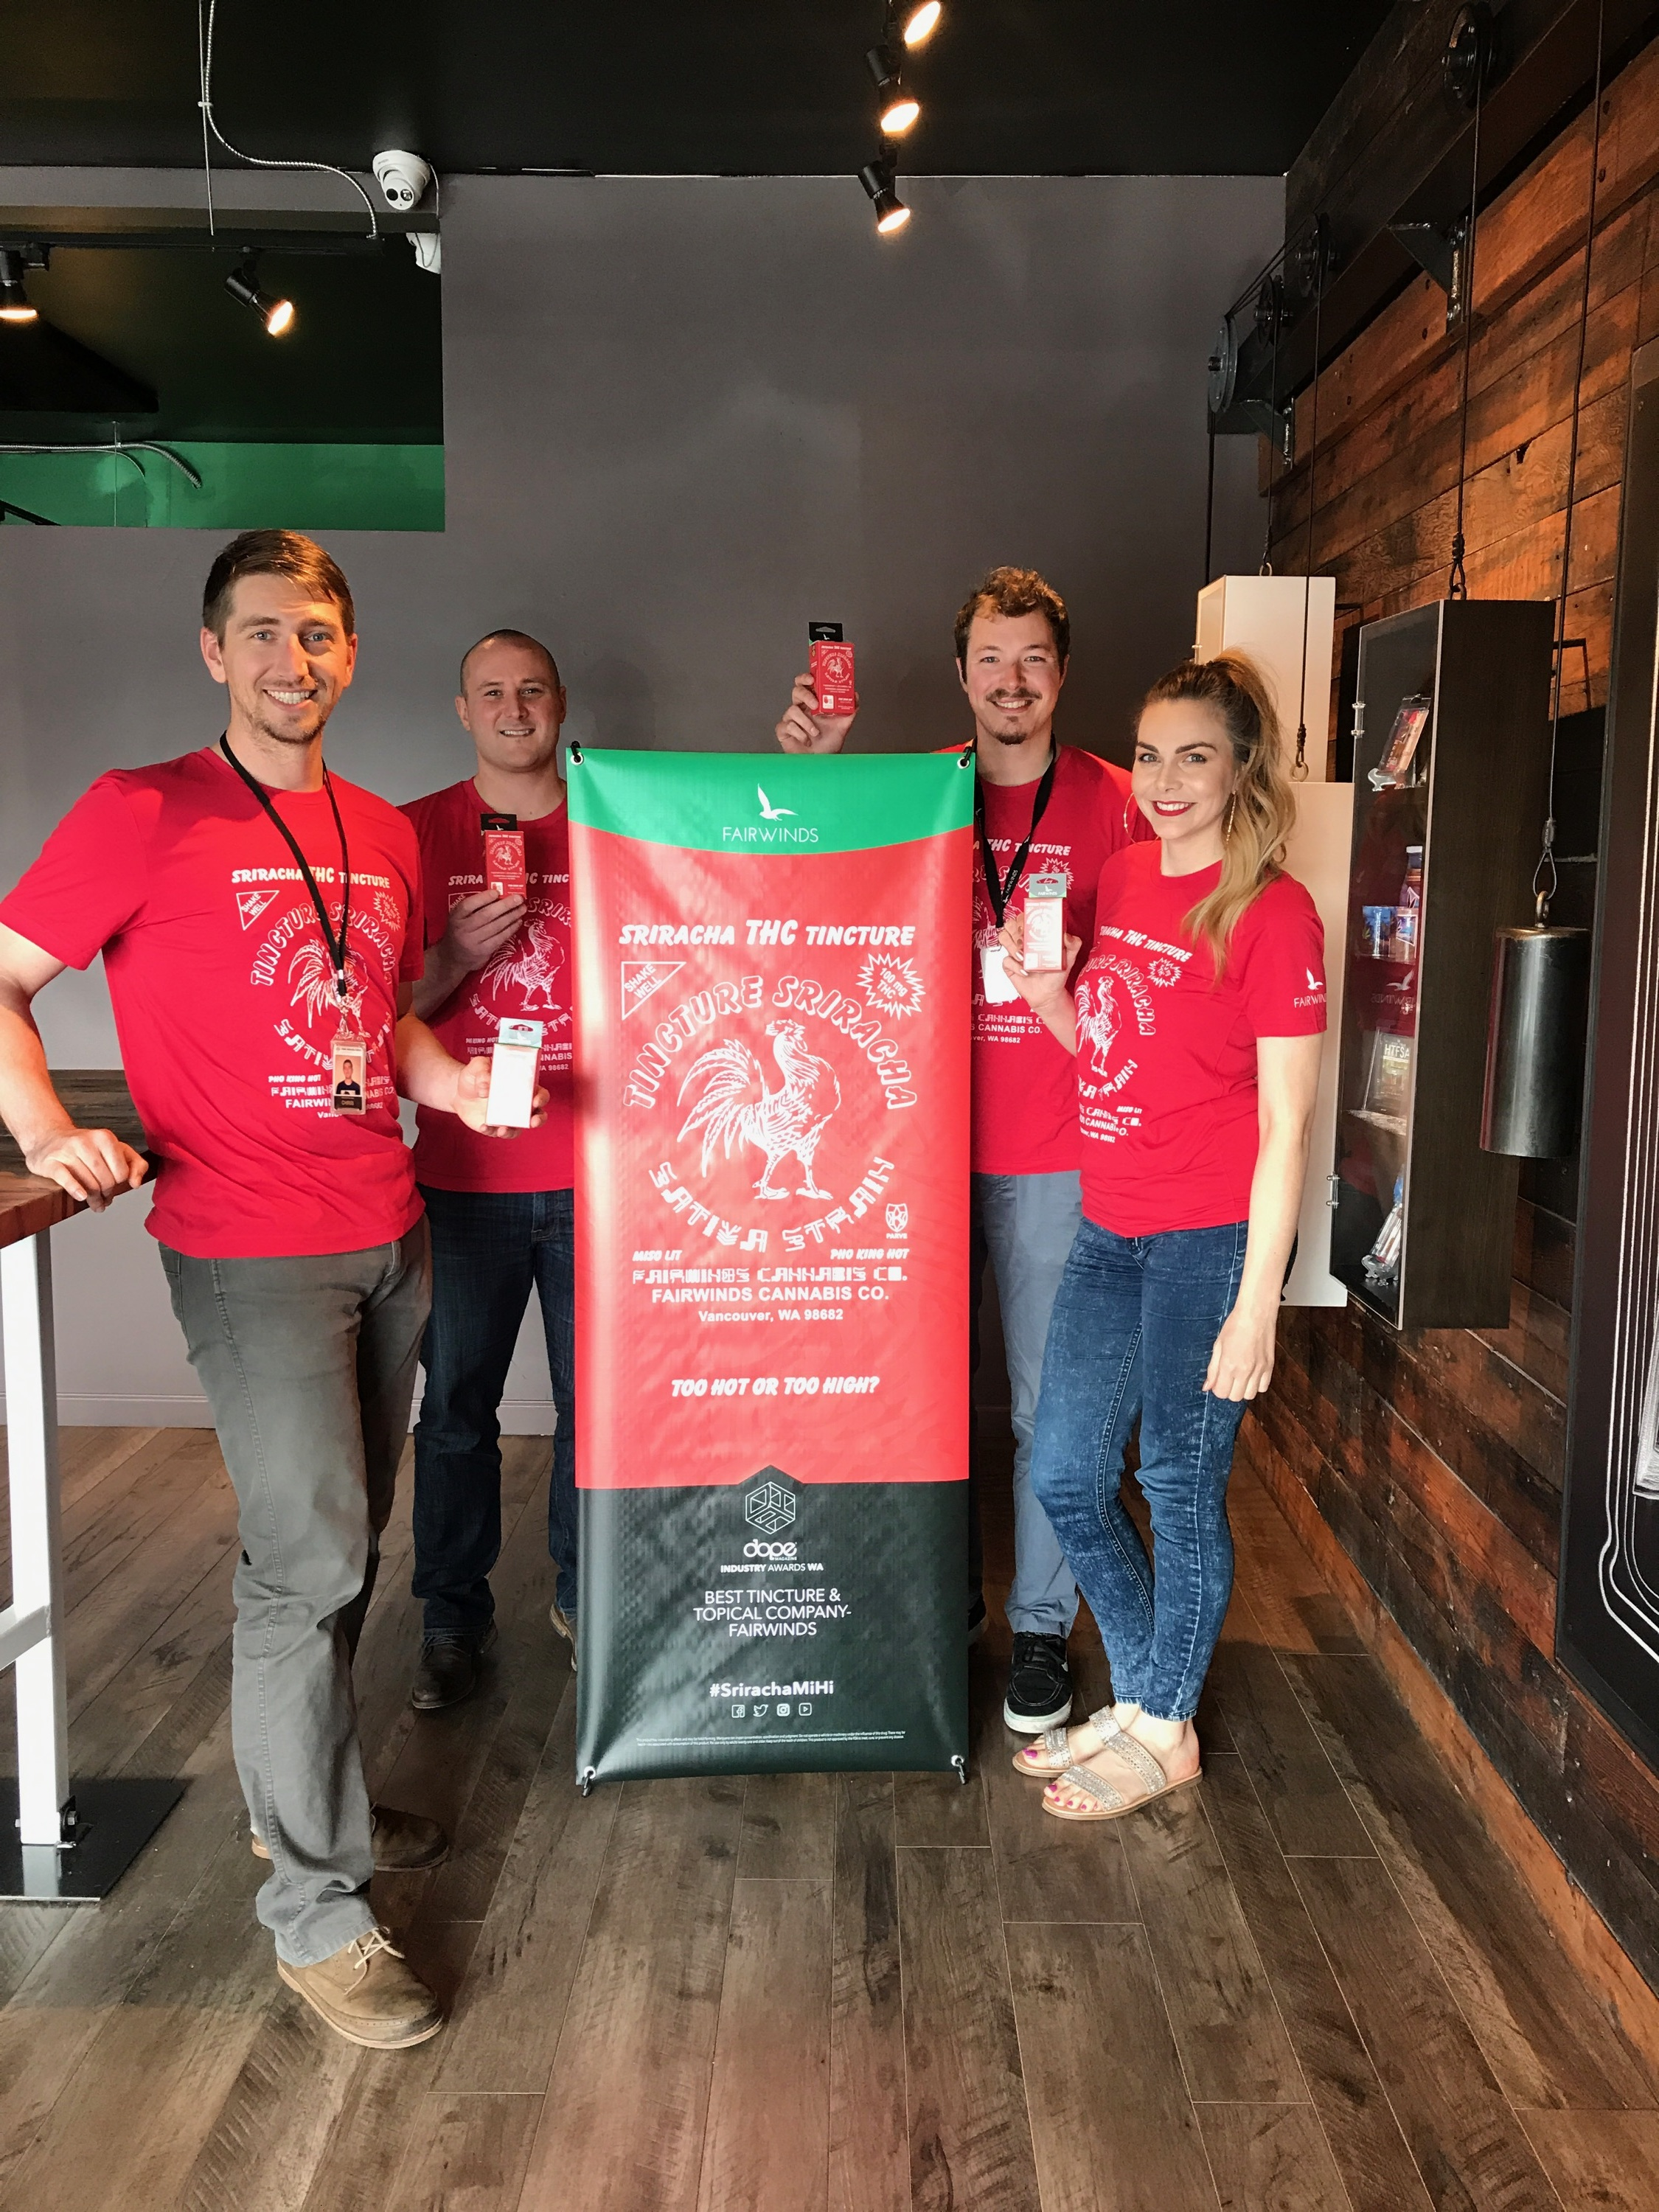 Sriracha release day at The Novel Tree!